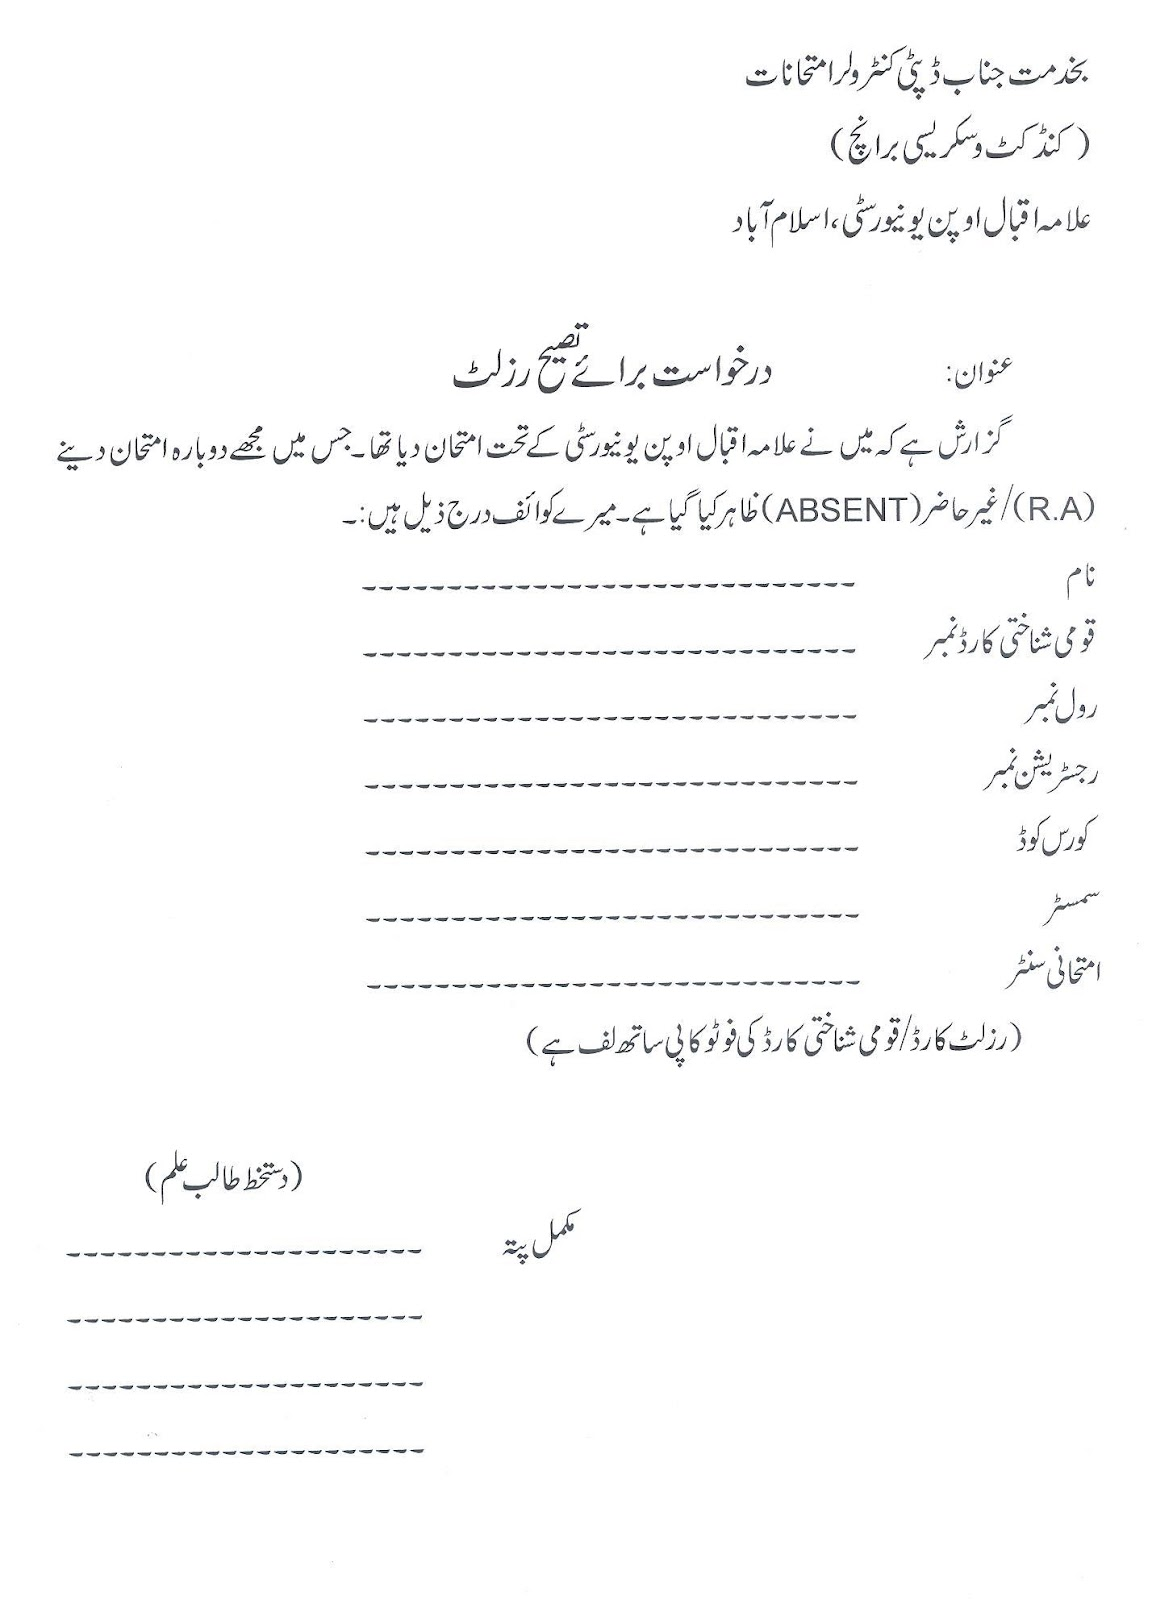 Allama Iqbal Open University Revision Of Result